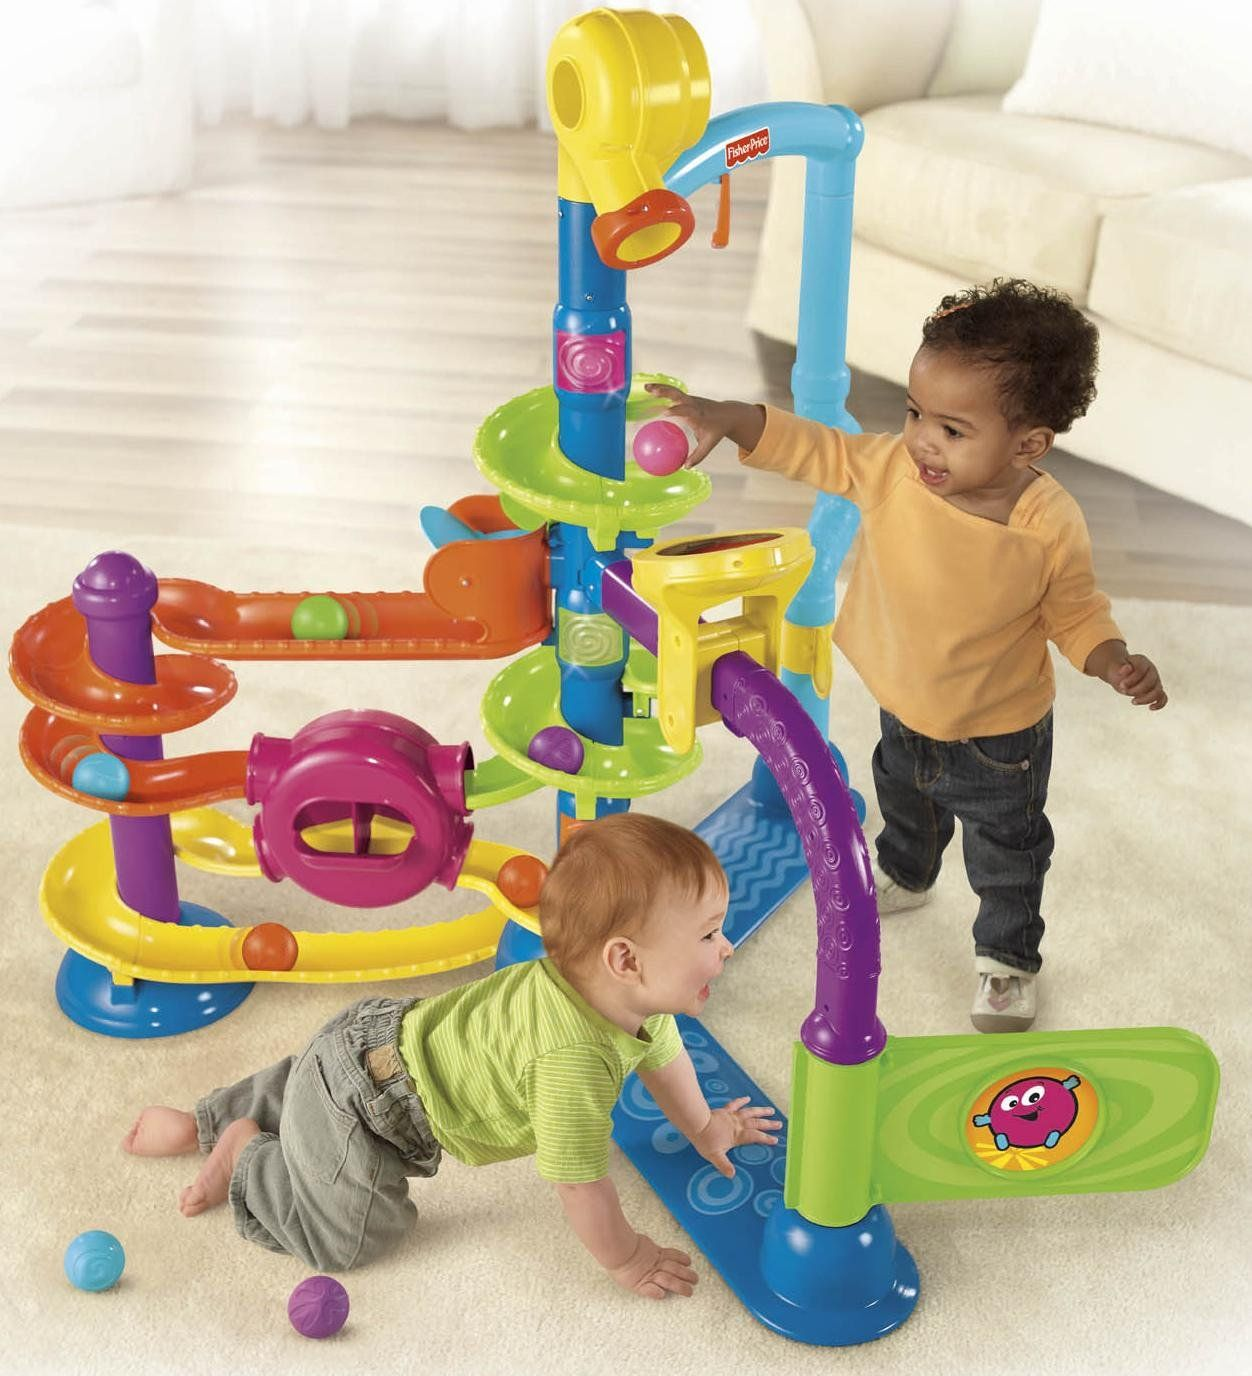 Best Gifts and Toys for 1 Year Old Boys Toys for 1 year